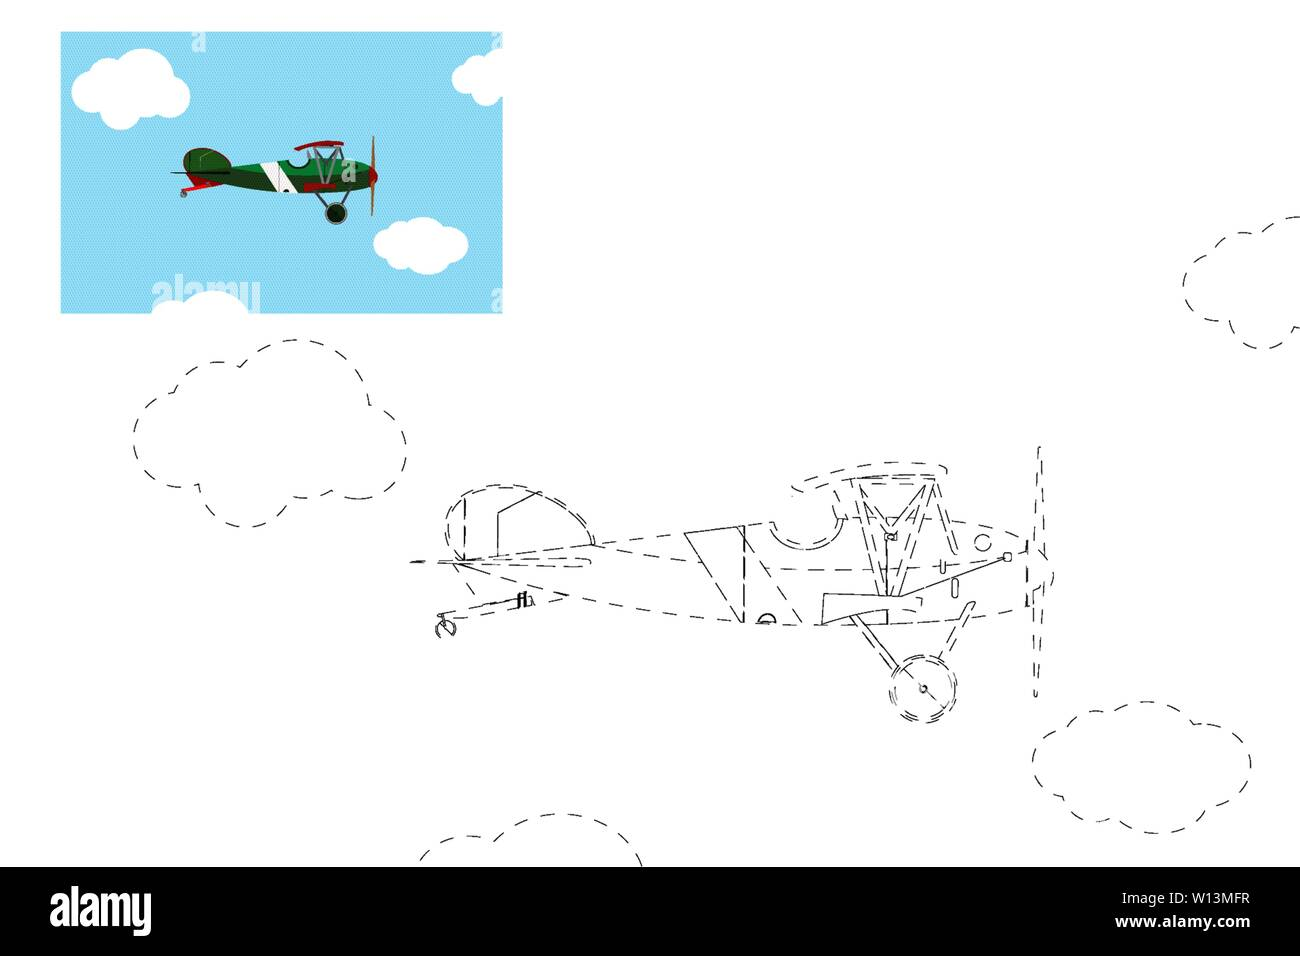 Coloring. Simple educational game for children. Vector illustration of an airplane. - Stock Image